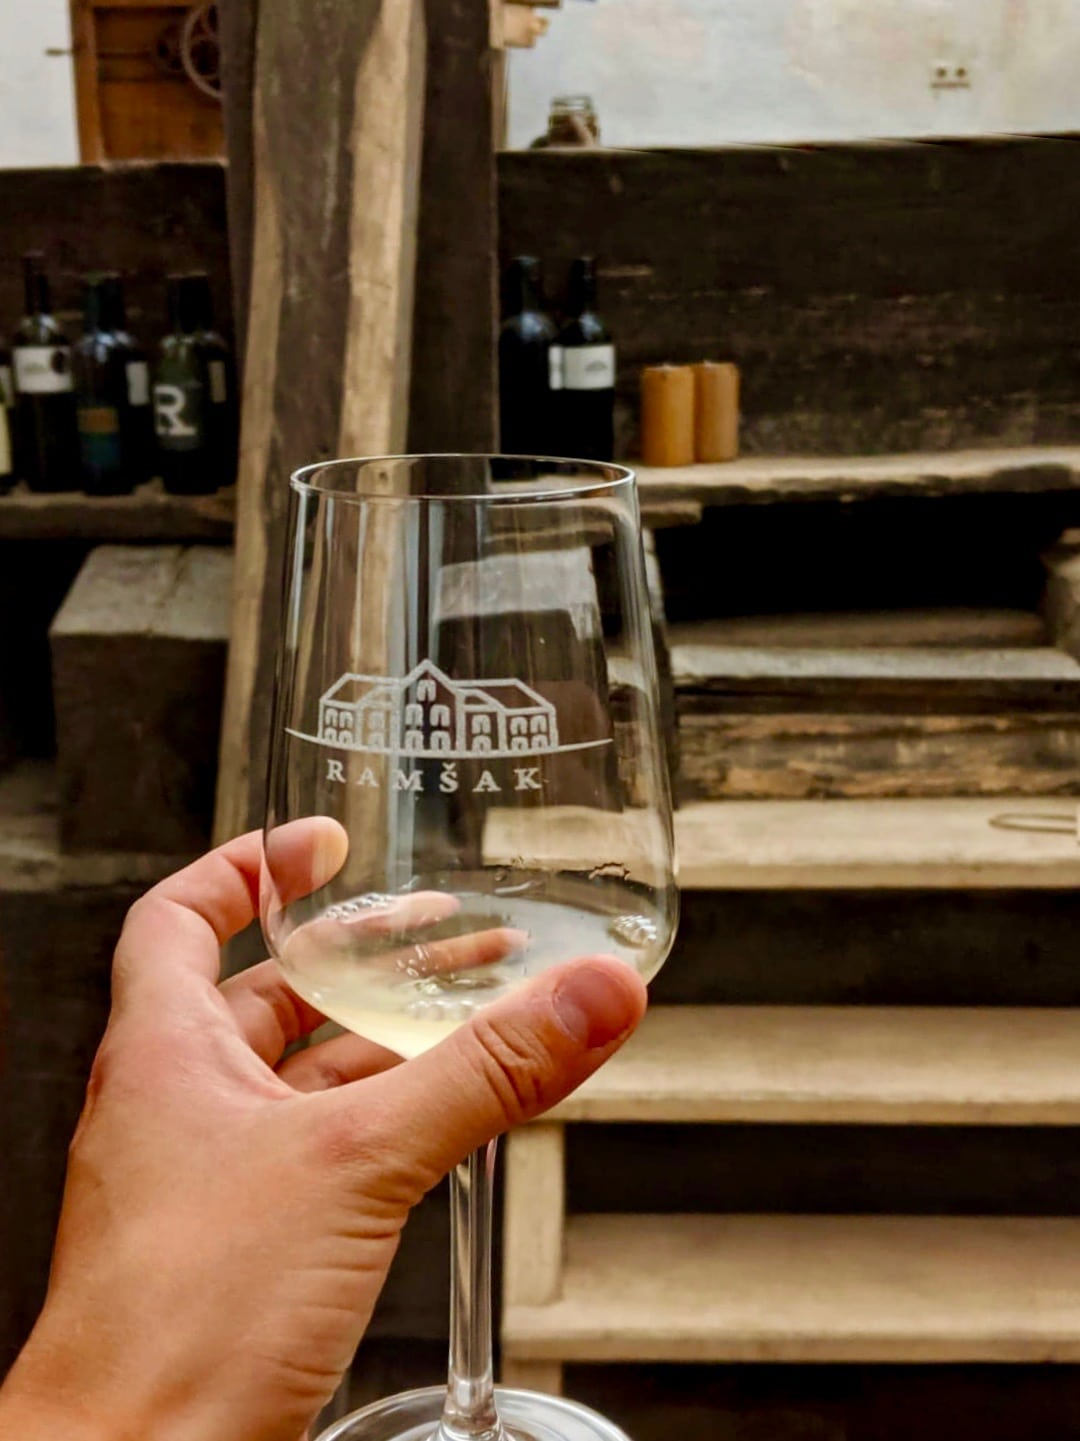 Glamping in Slovenia: glass of white wine with Chateau Ramsak branding on, taken inside the wine cellar with the largest wine press in Europe in the background